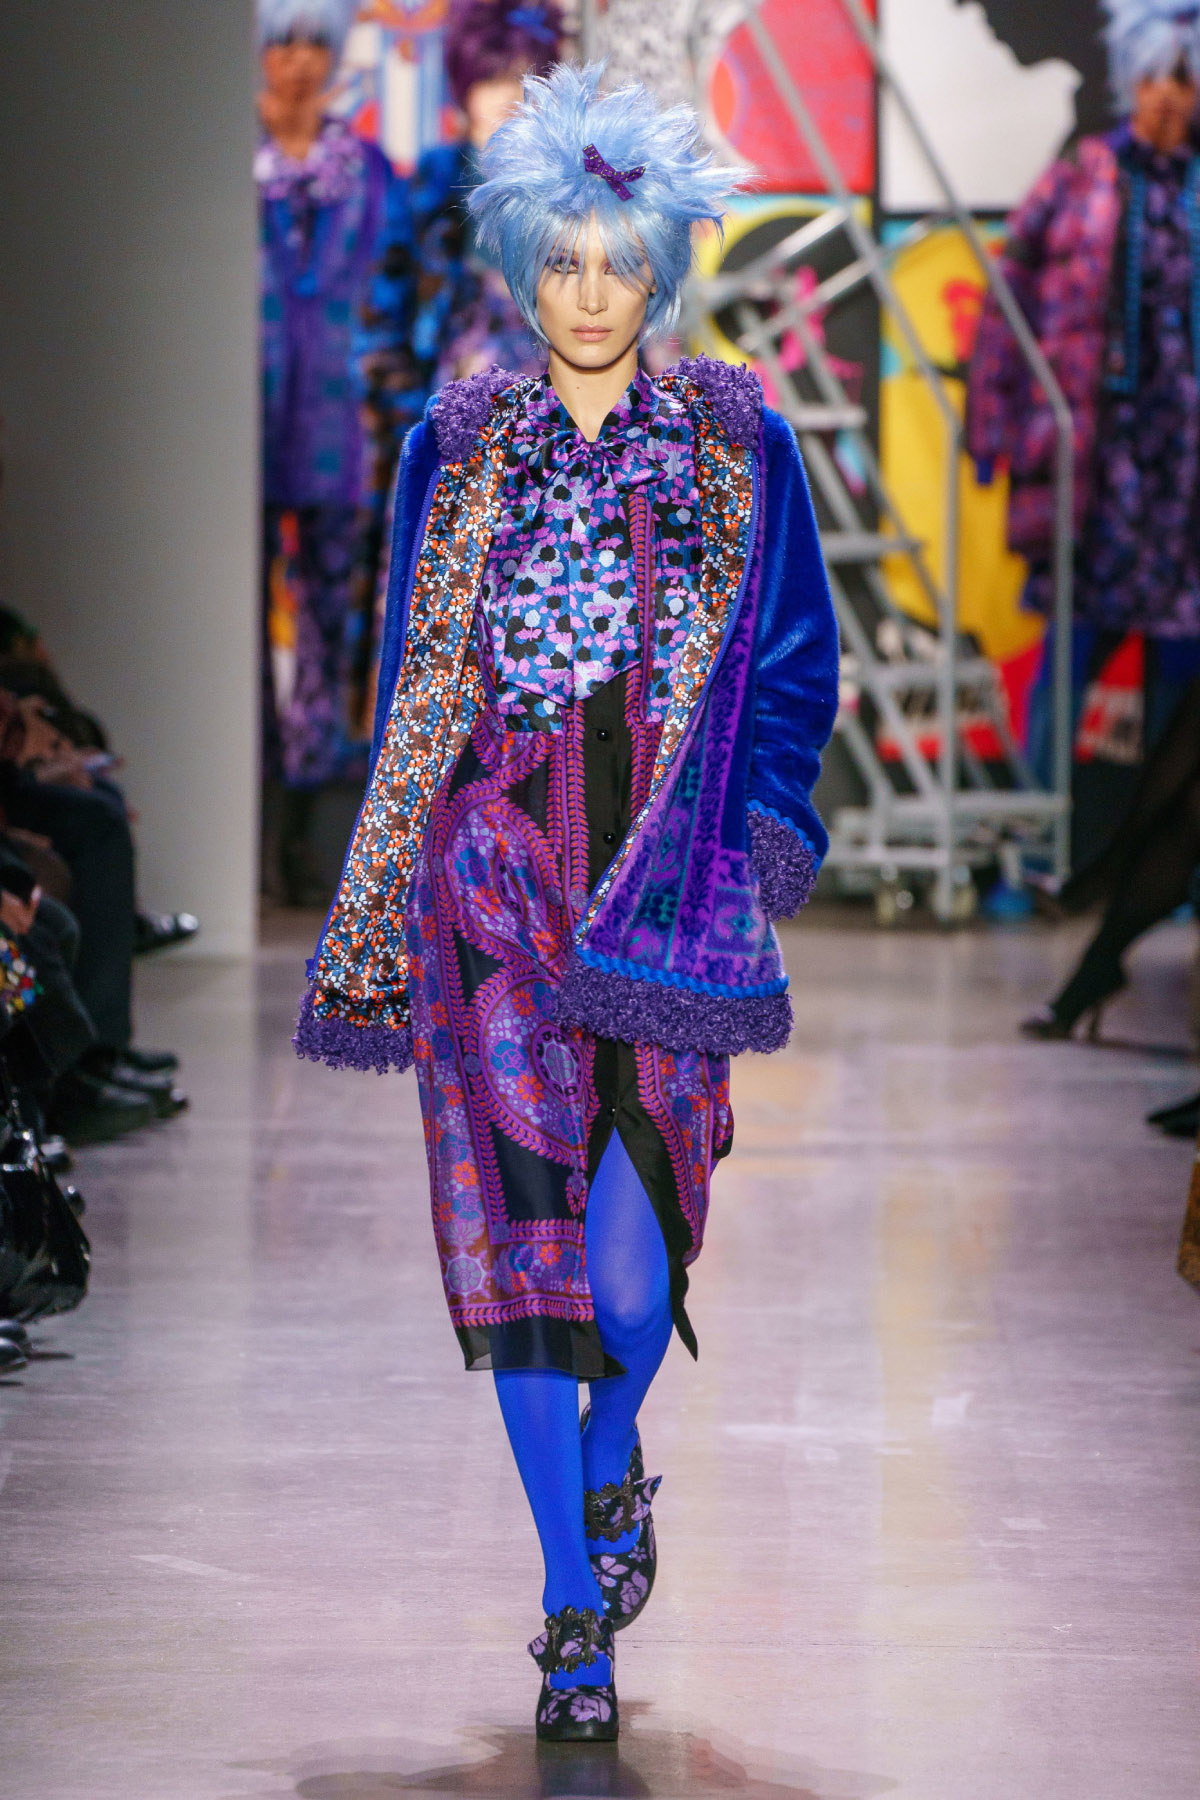 Anna Sui – Fall 2019 Collection - We Love Colors